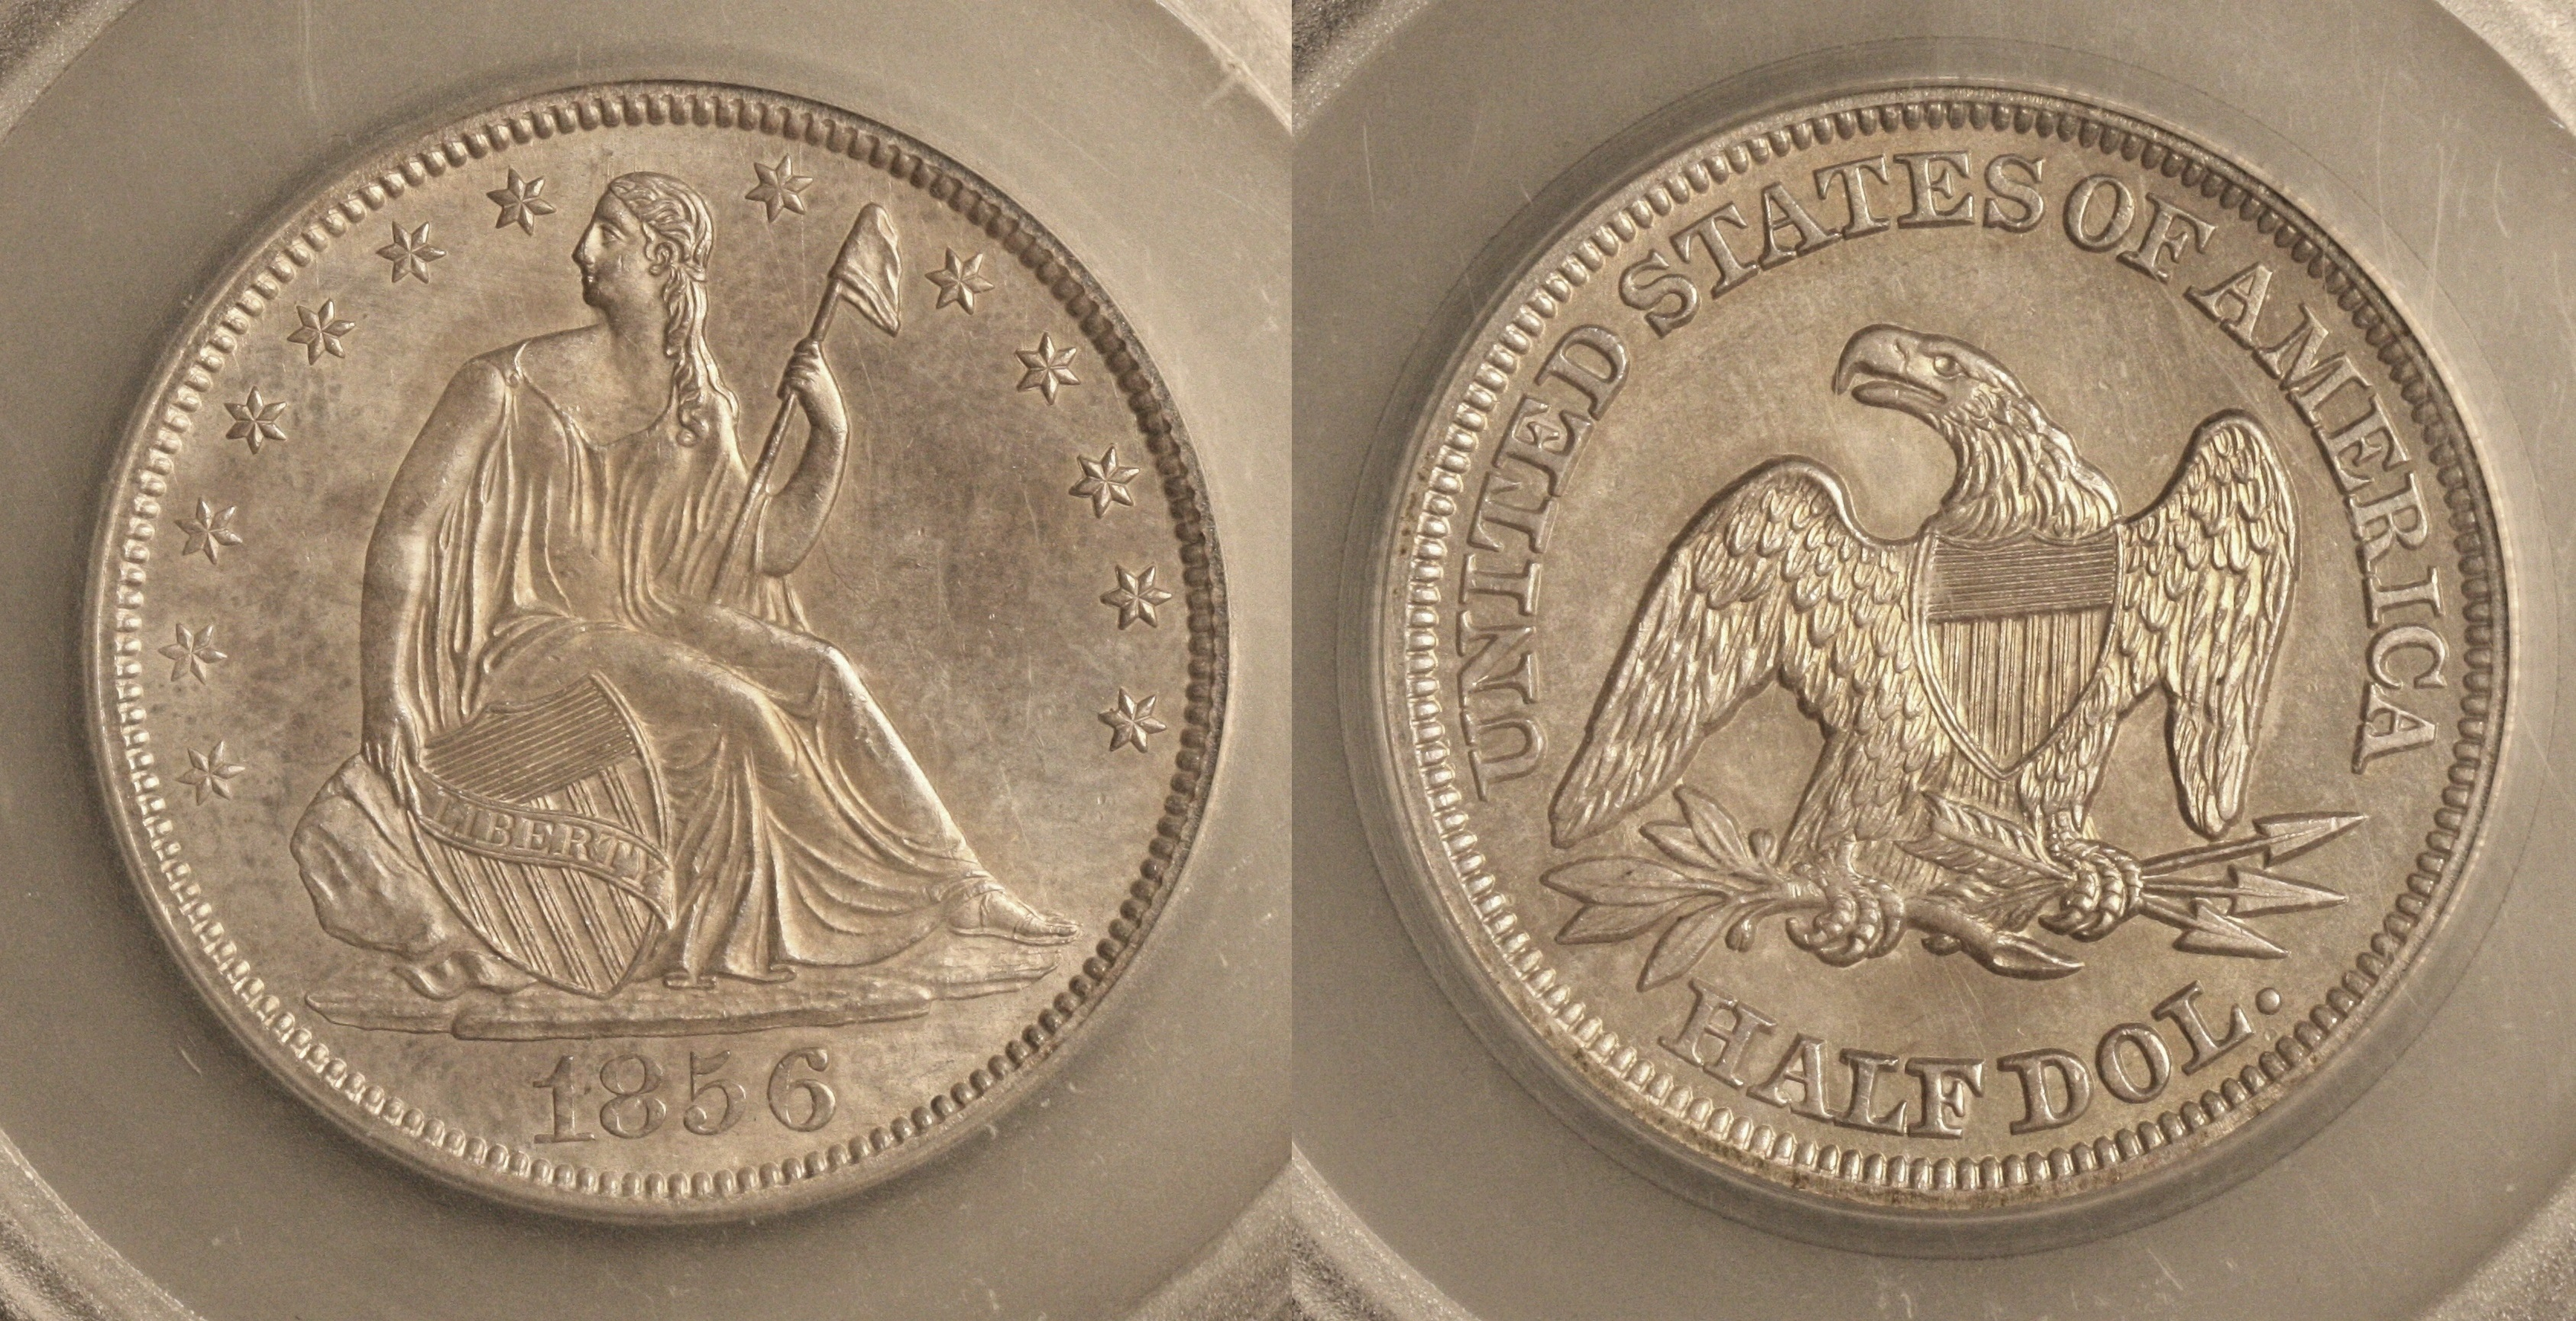 1856 Seated Liberty Half Dollar SEGS MS-64 camera